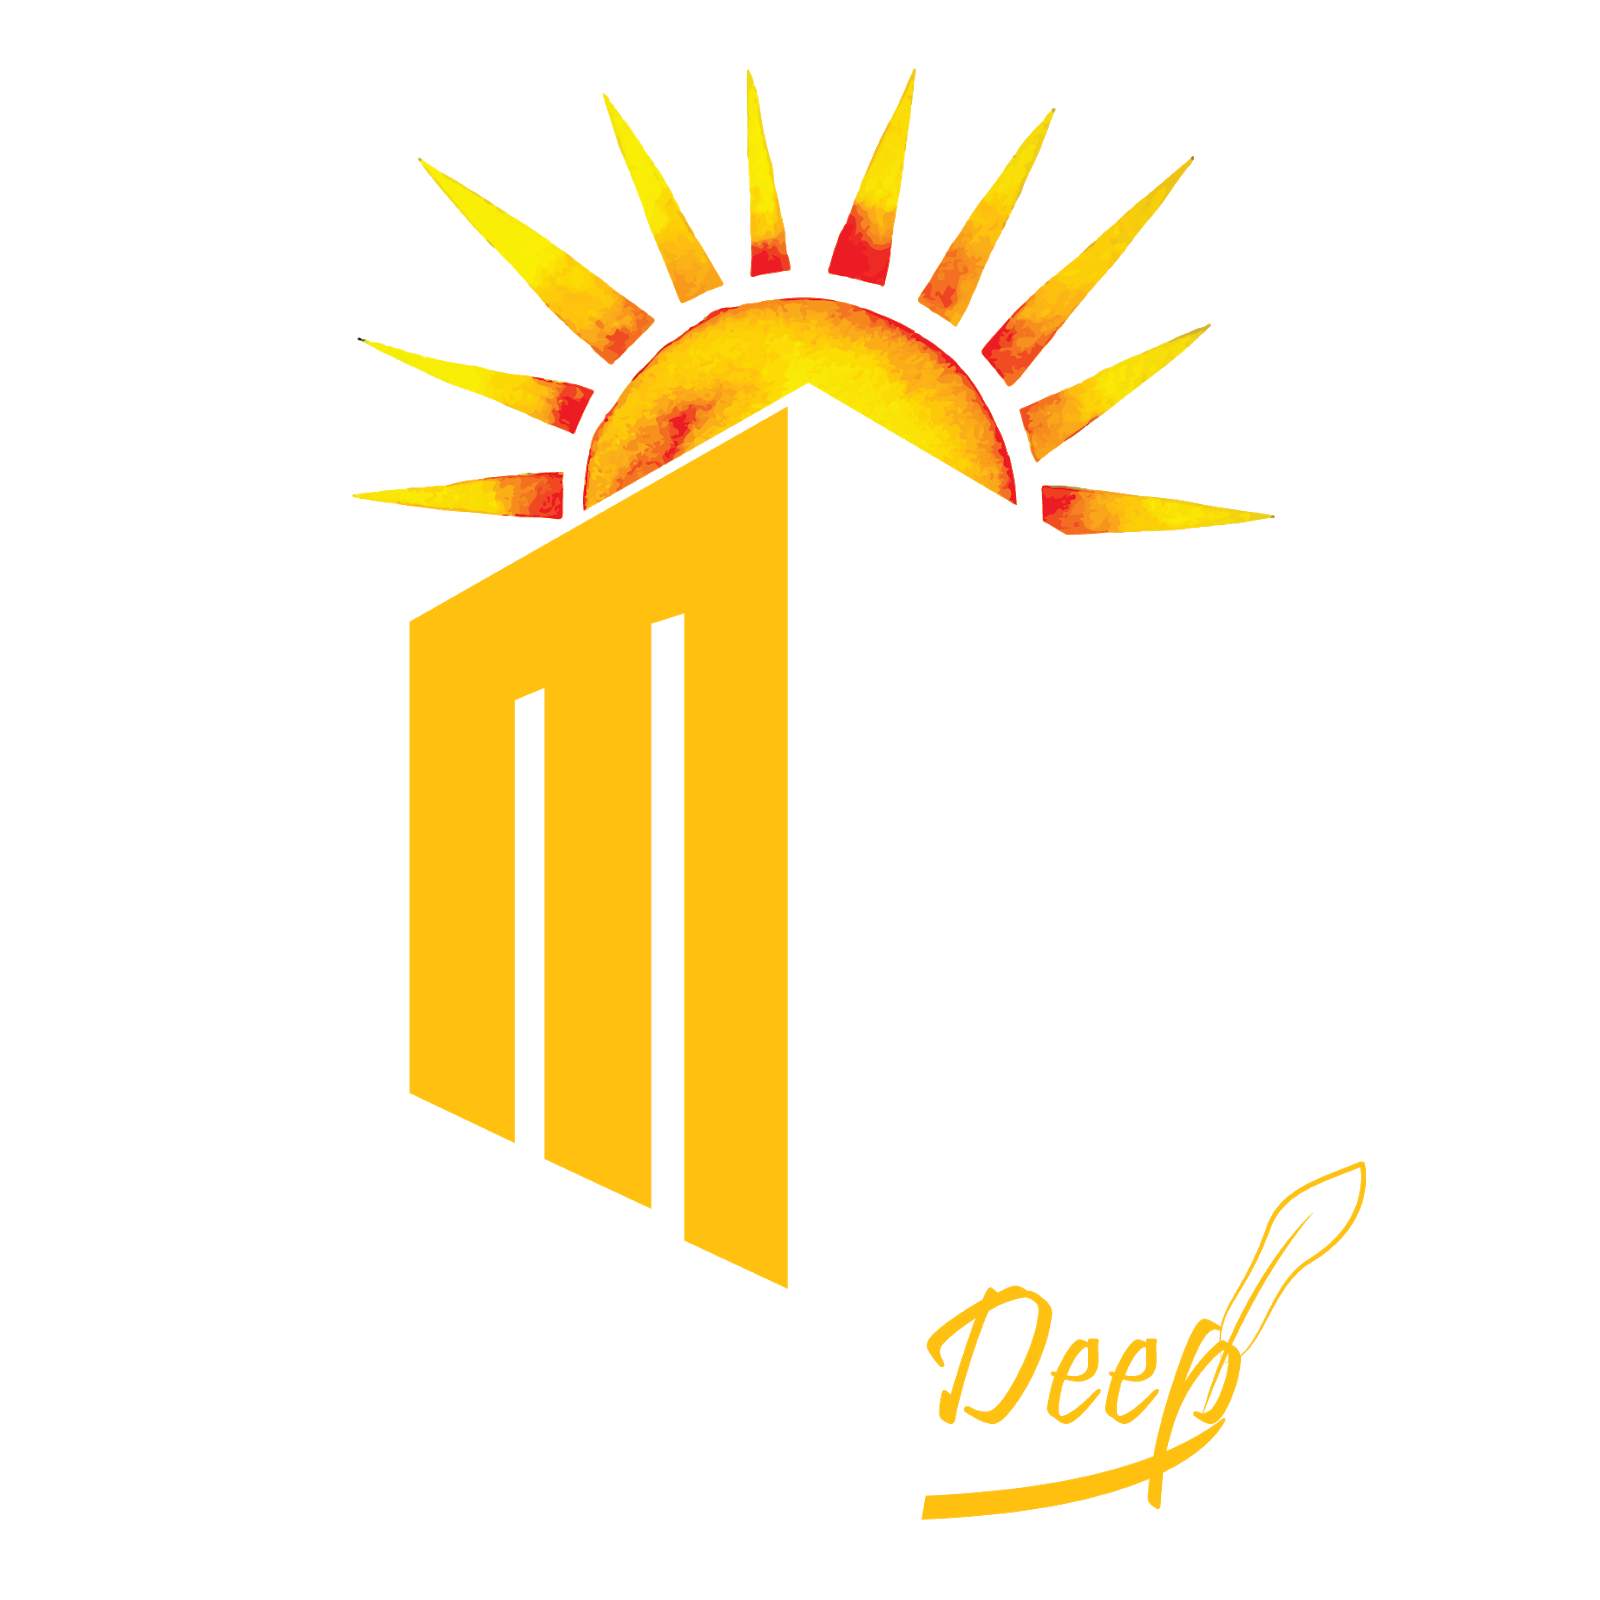 Manonit Deep - Engineer | Motivational Speaker | Social Worker | Writer | Orator